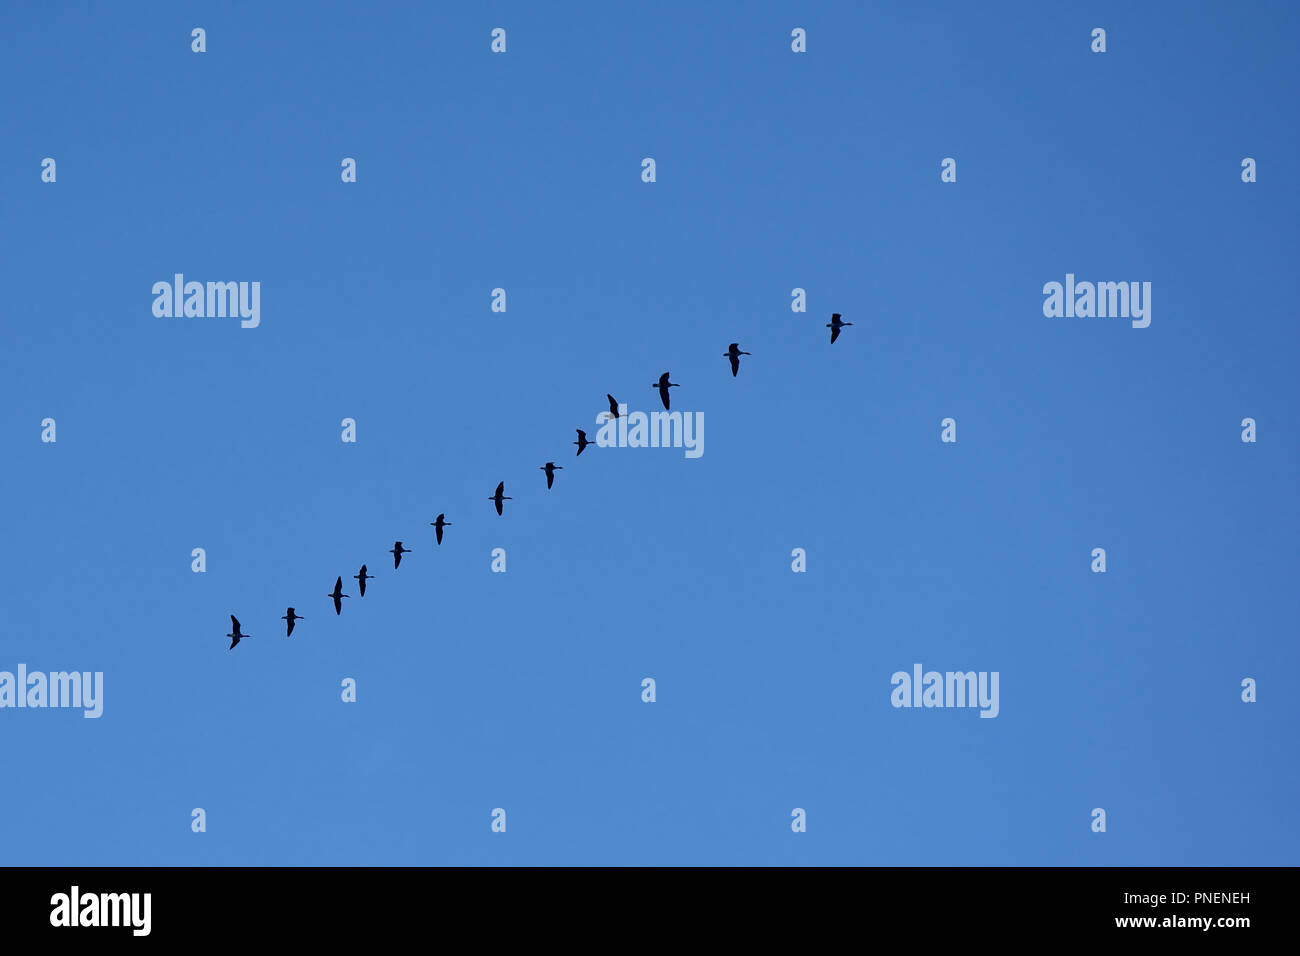 Group of geese in flight on a clear blue sky, view from below  -  anatidae - Stock Image